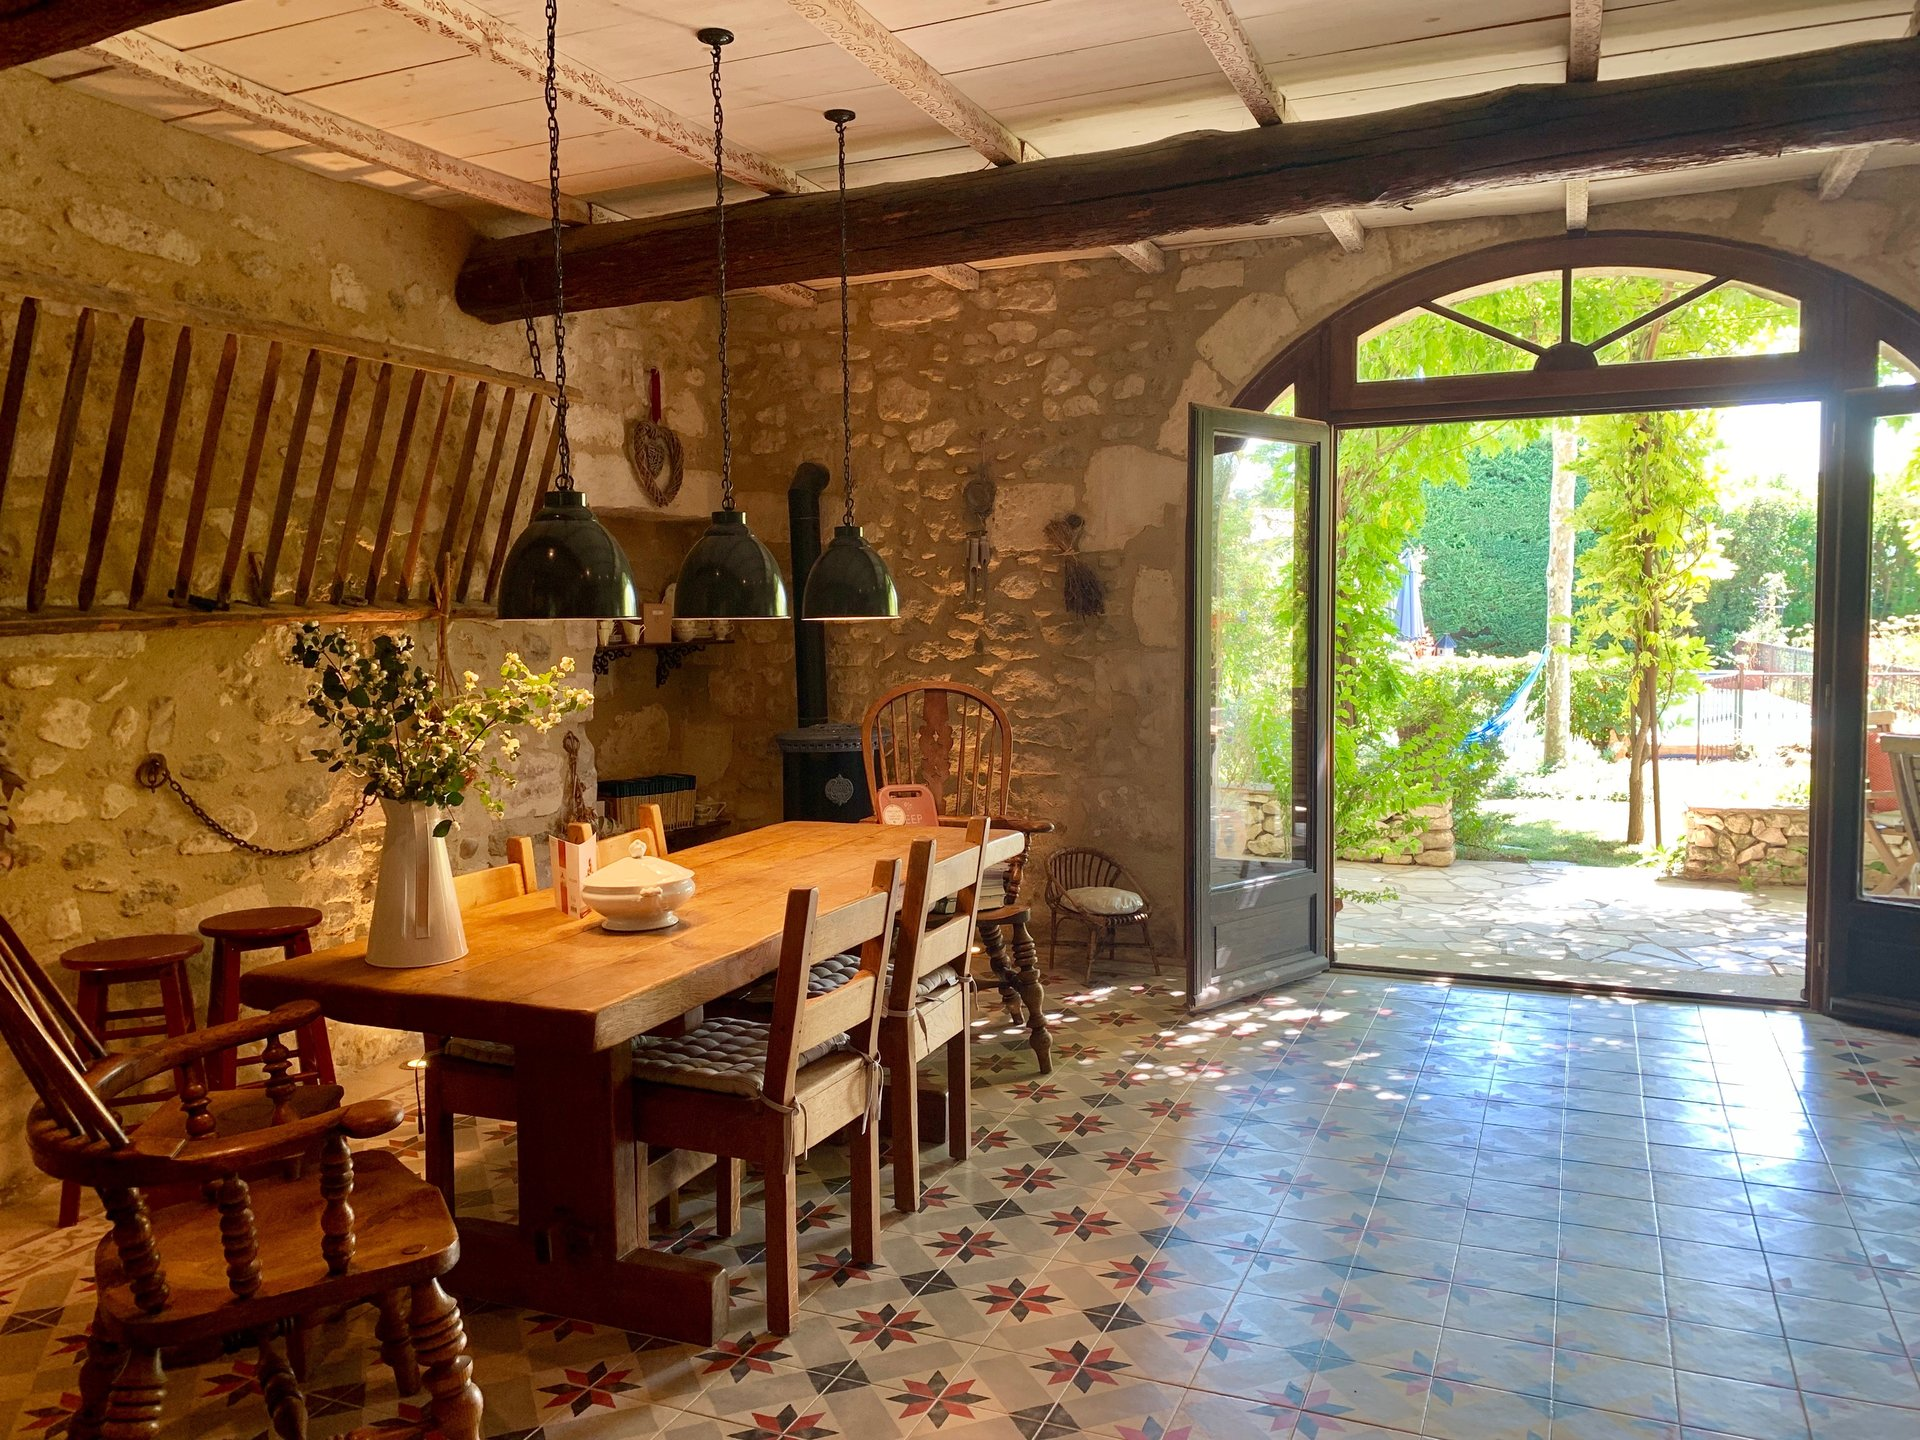 FOR SALE STONE FARHOUSE NEAR SAINT-REMY-DE-PROVENCE